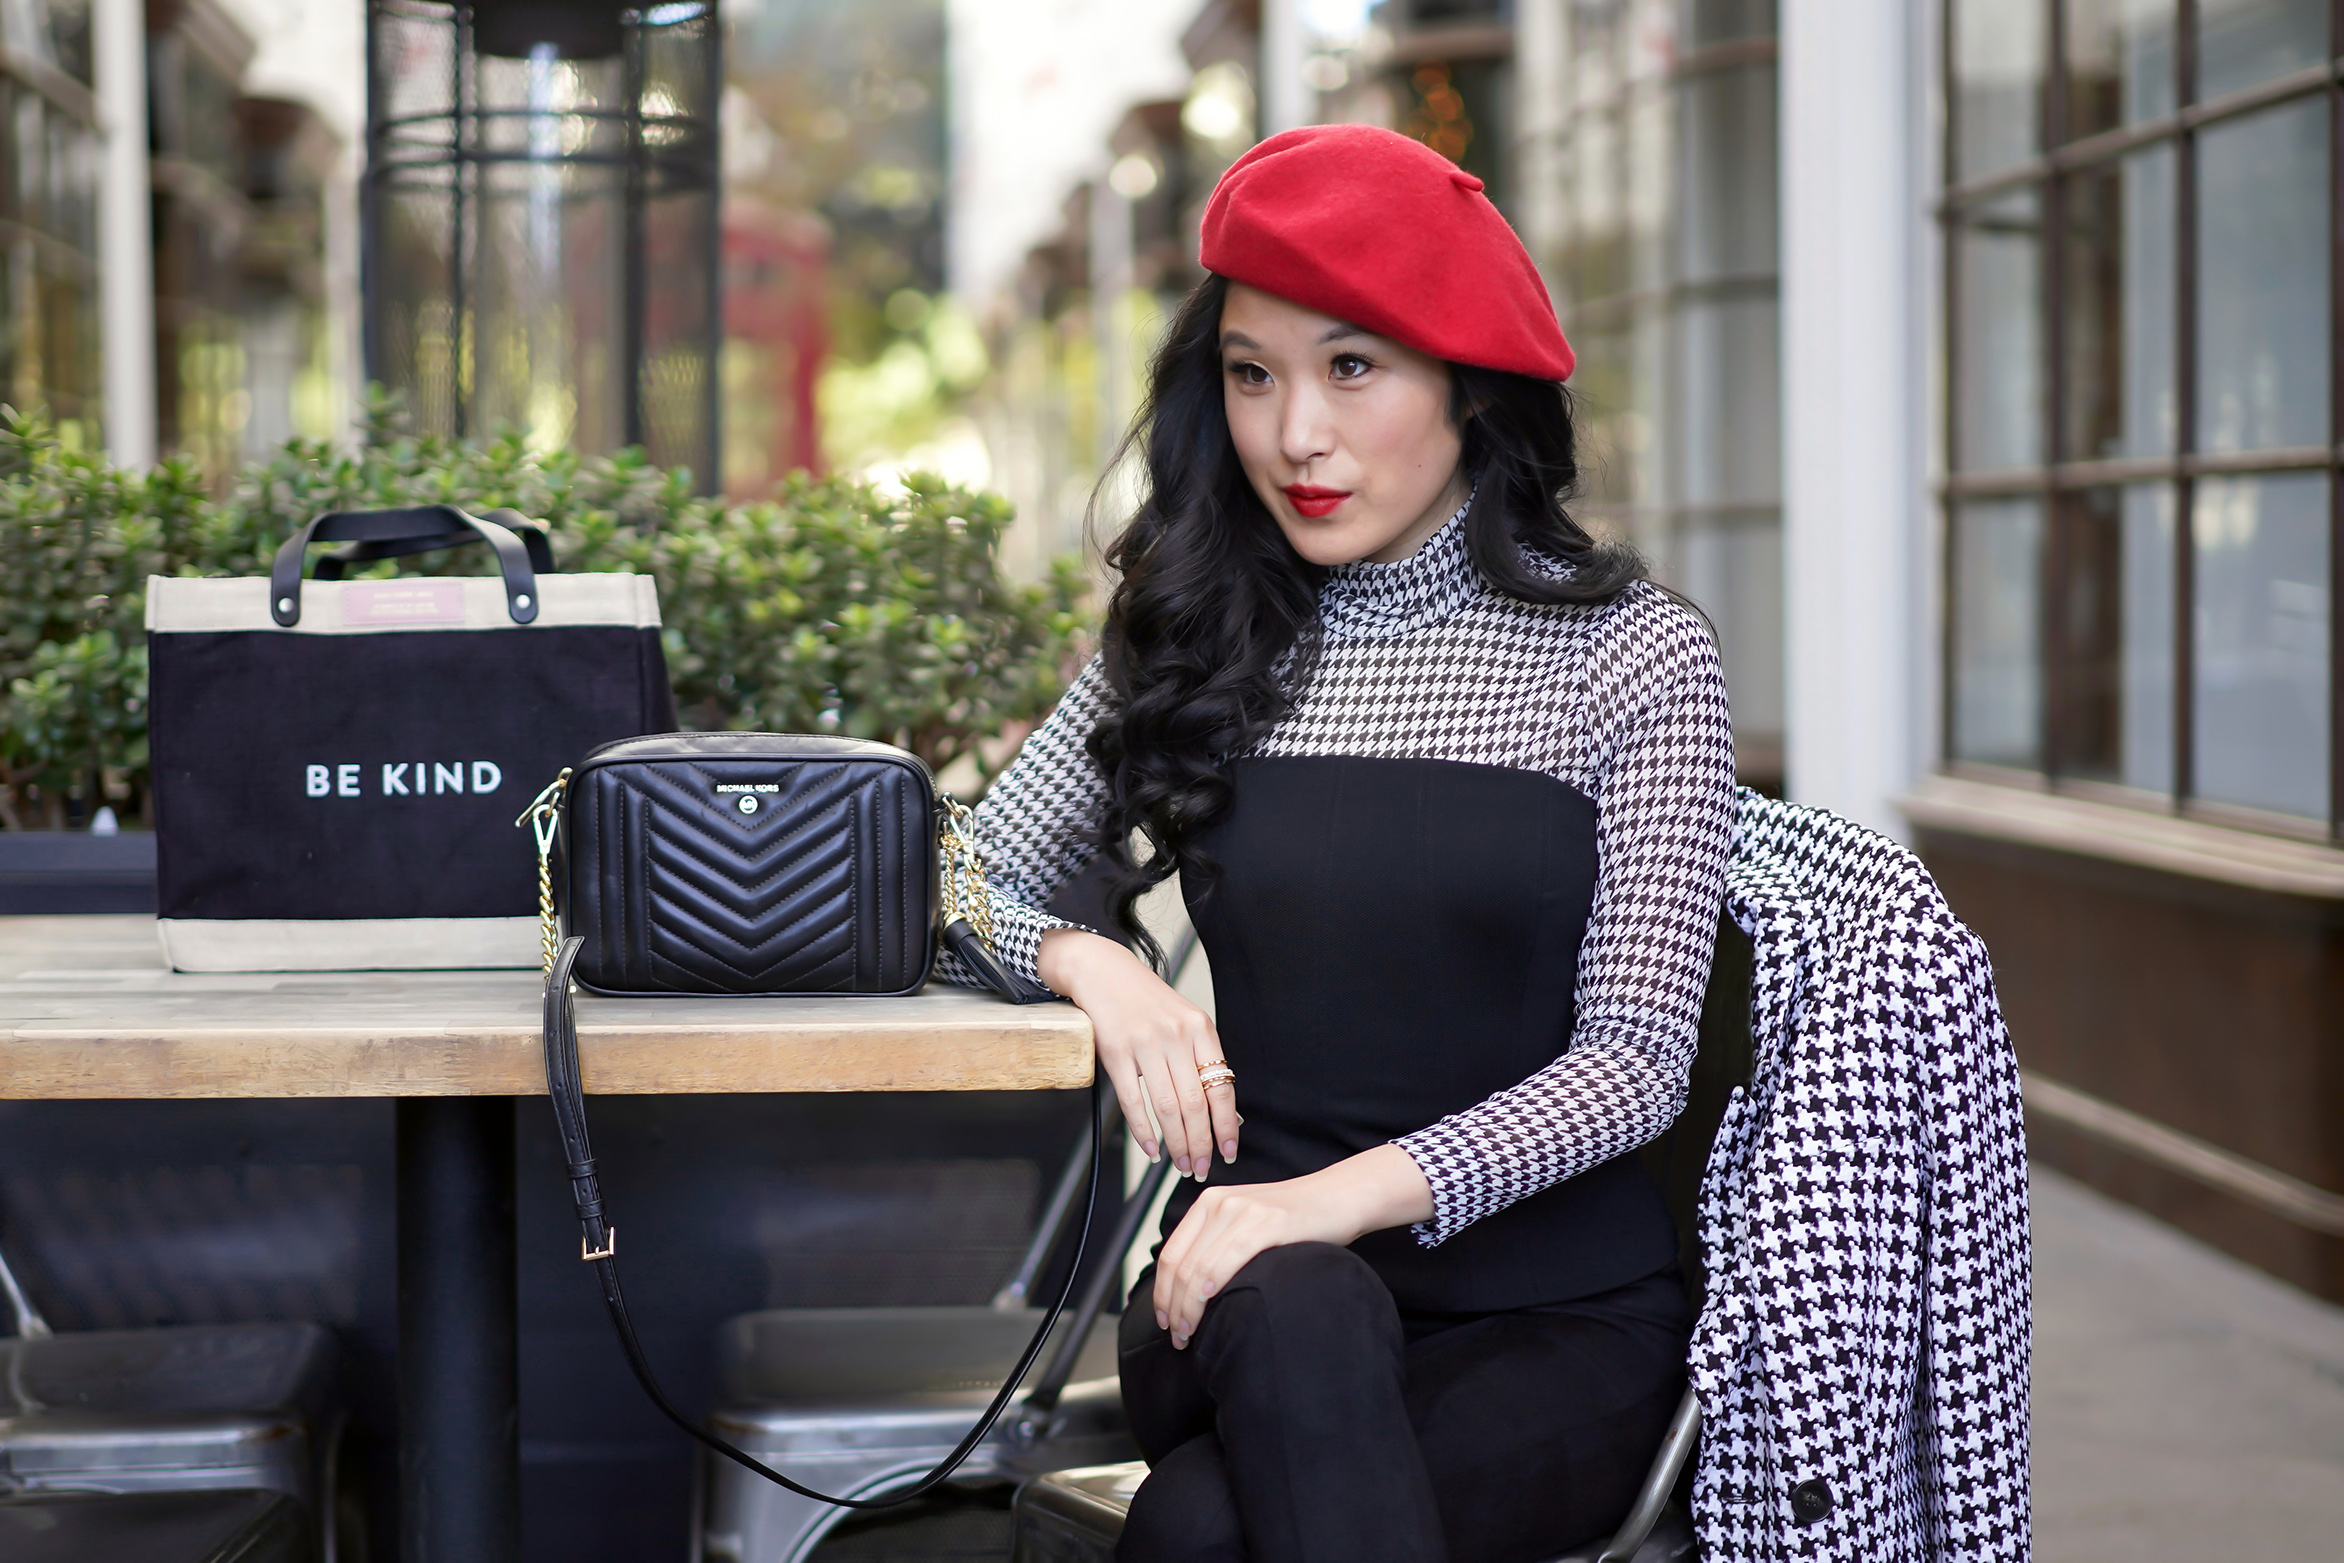 Emily In Paris - Lily Collins Inspired Fashion and Style with White House Black Market houndstooth mesh turtleneck, black bustier, red beret, Apolis bag and Michael Kors quilted camera crossbody purse